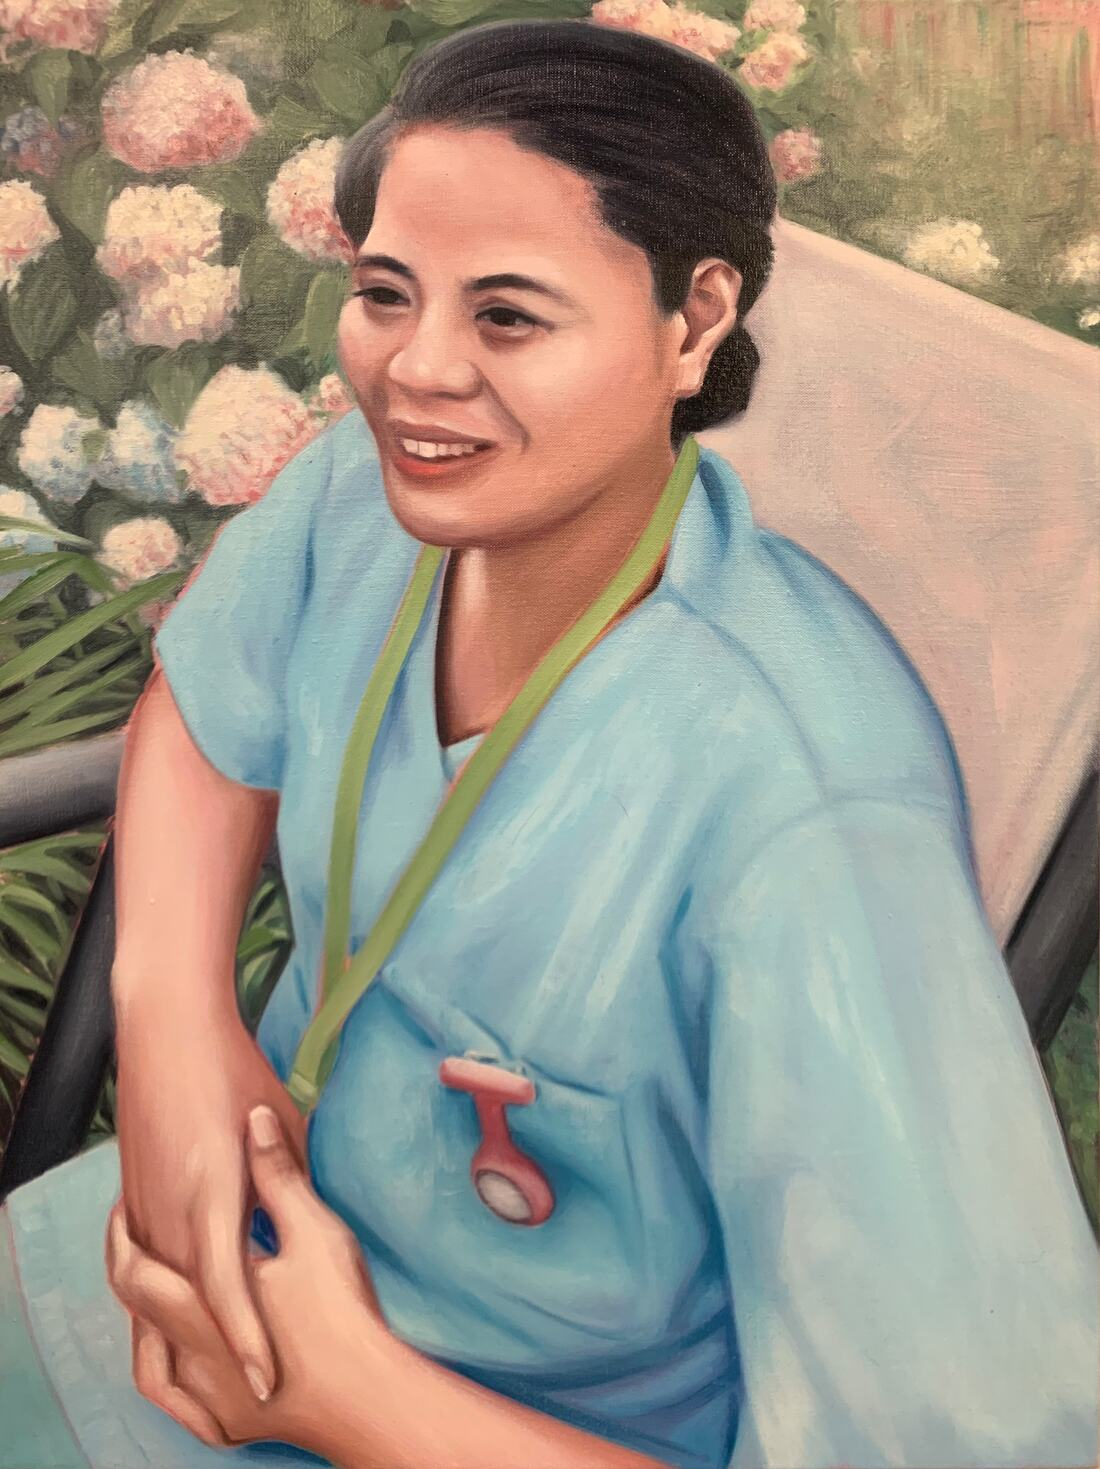 Everyday Heroes: Jacqui, 2020 Oil on linen